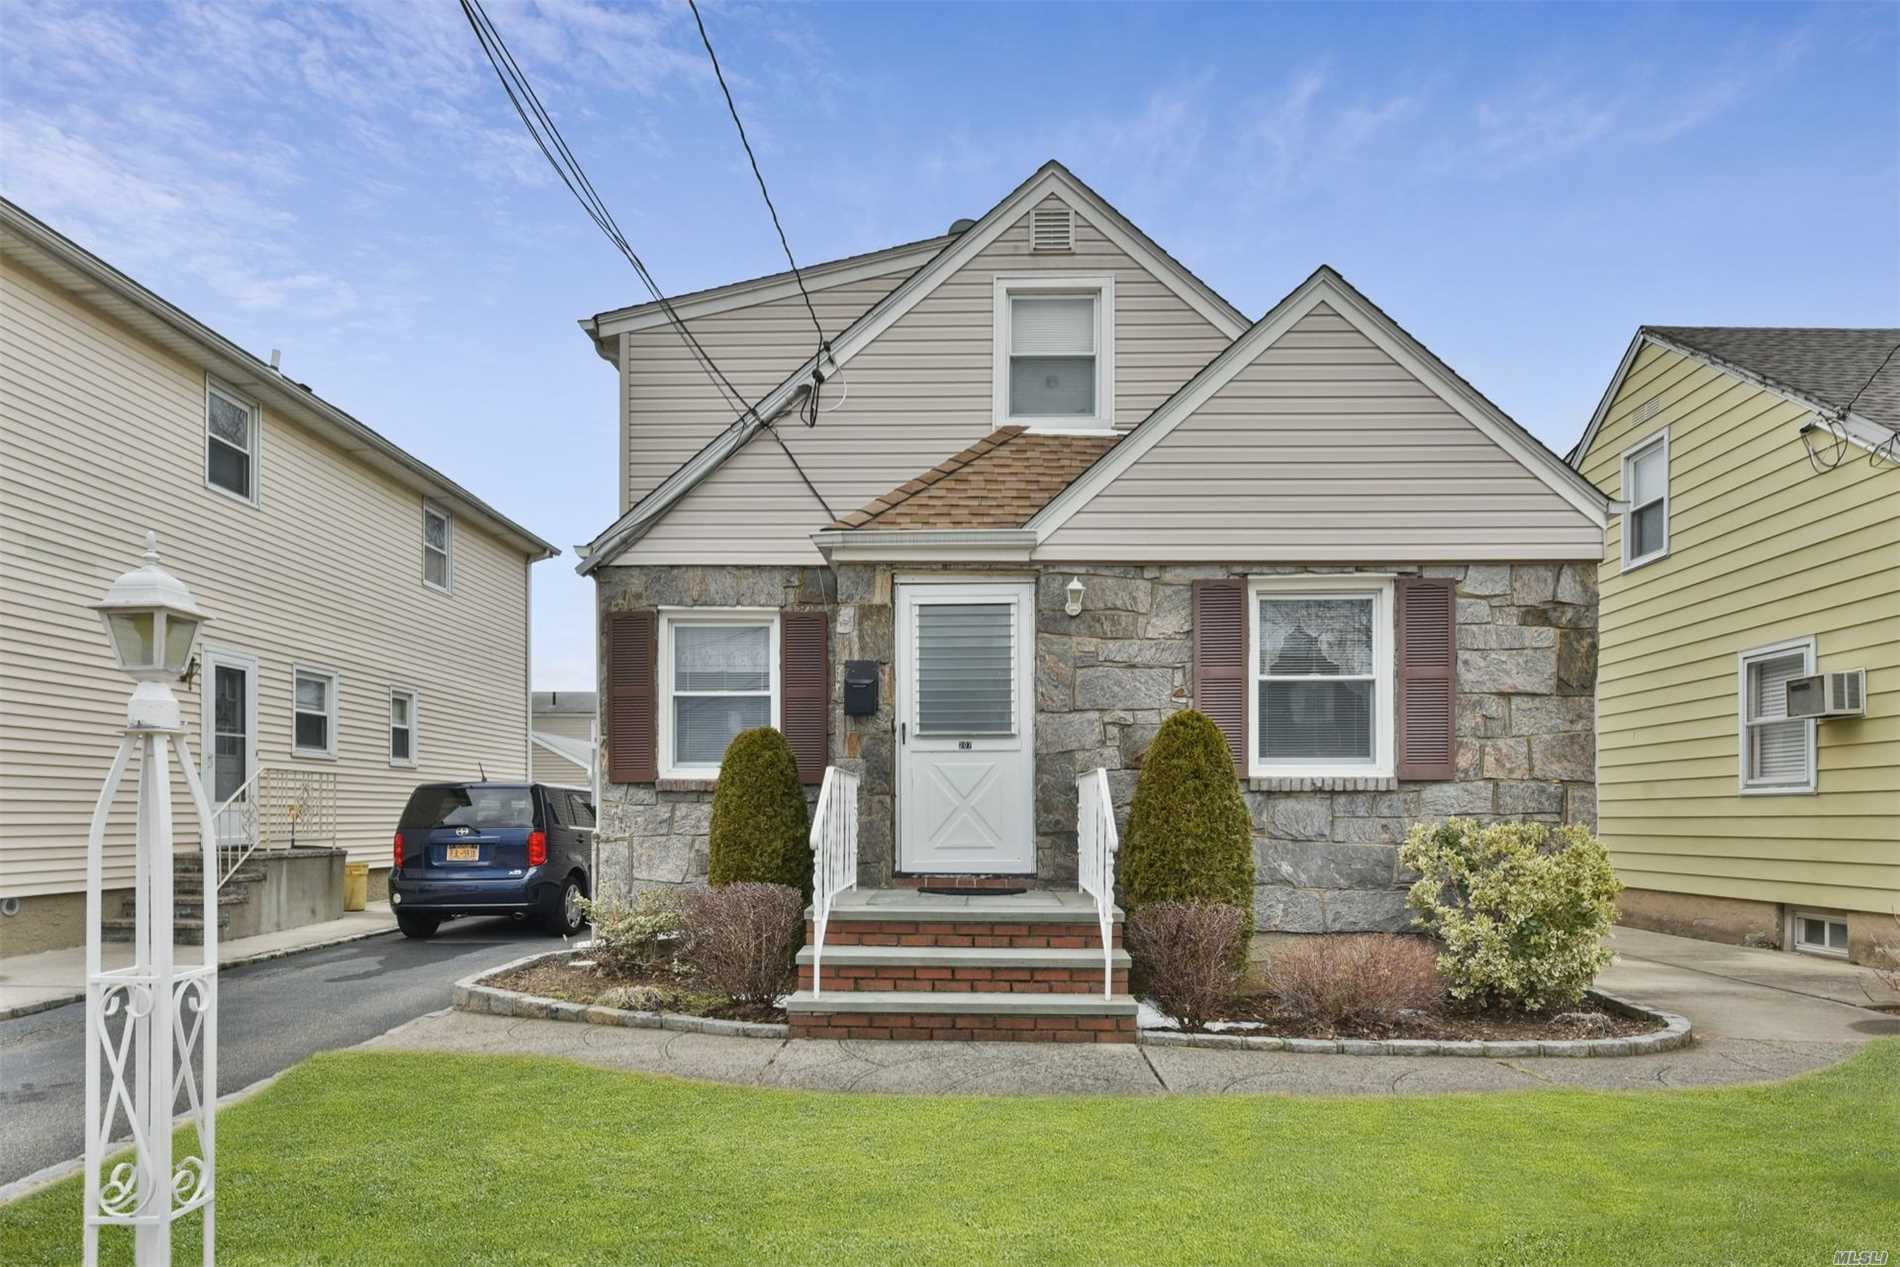 Well Kept Cape Home For Sale In Mineola, Full Side Dormer, 2nd Floor Can Be Made Into 2 Brs, New Gas Heating, Oversize Garage, Finished Basement, New 200 Amps Electric , All Replacement Windows.